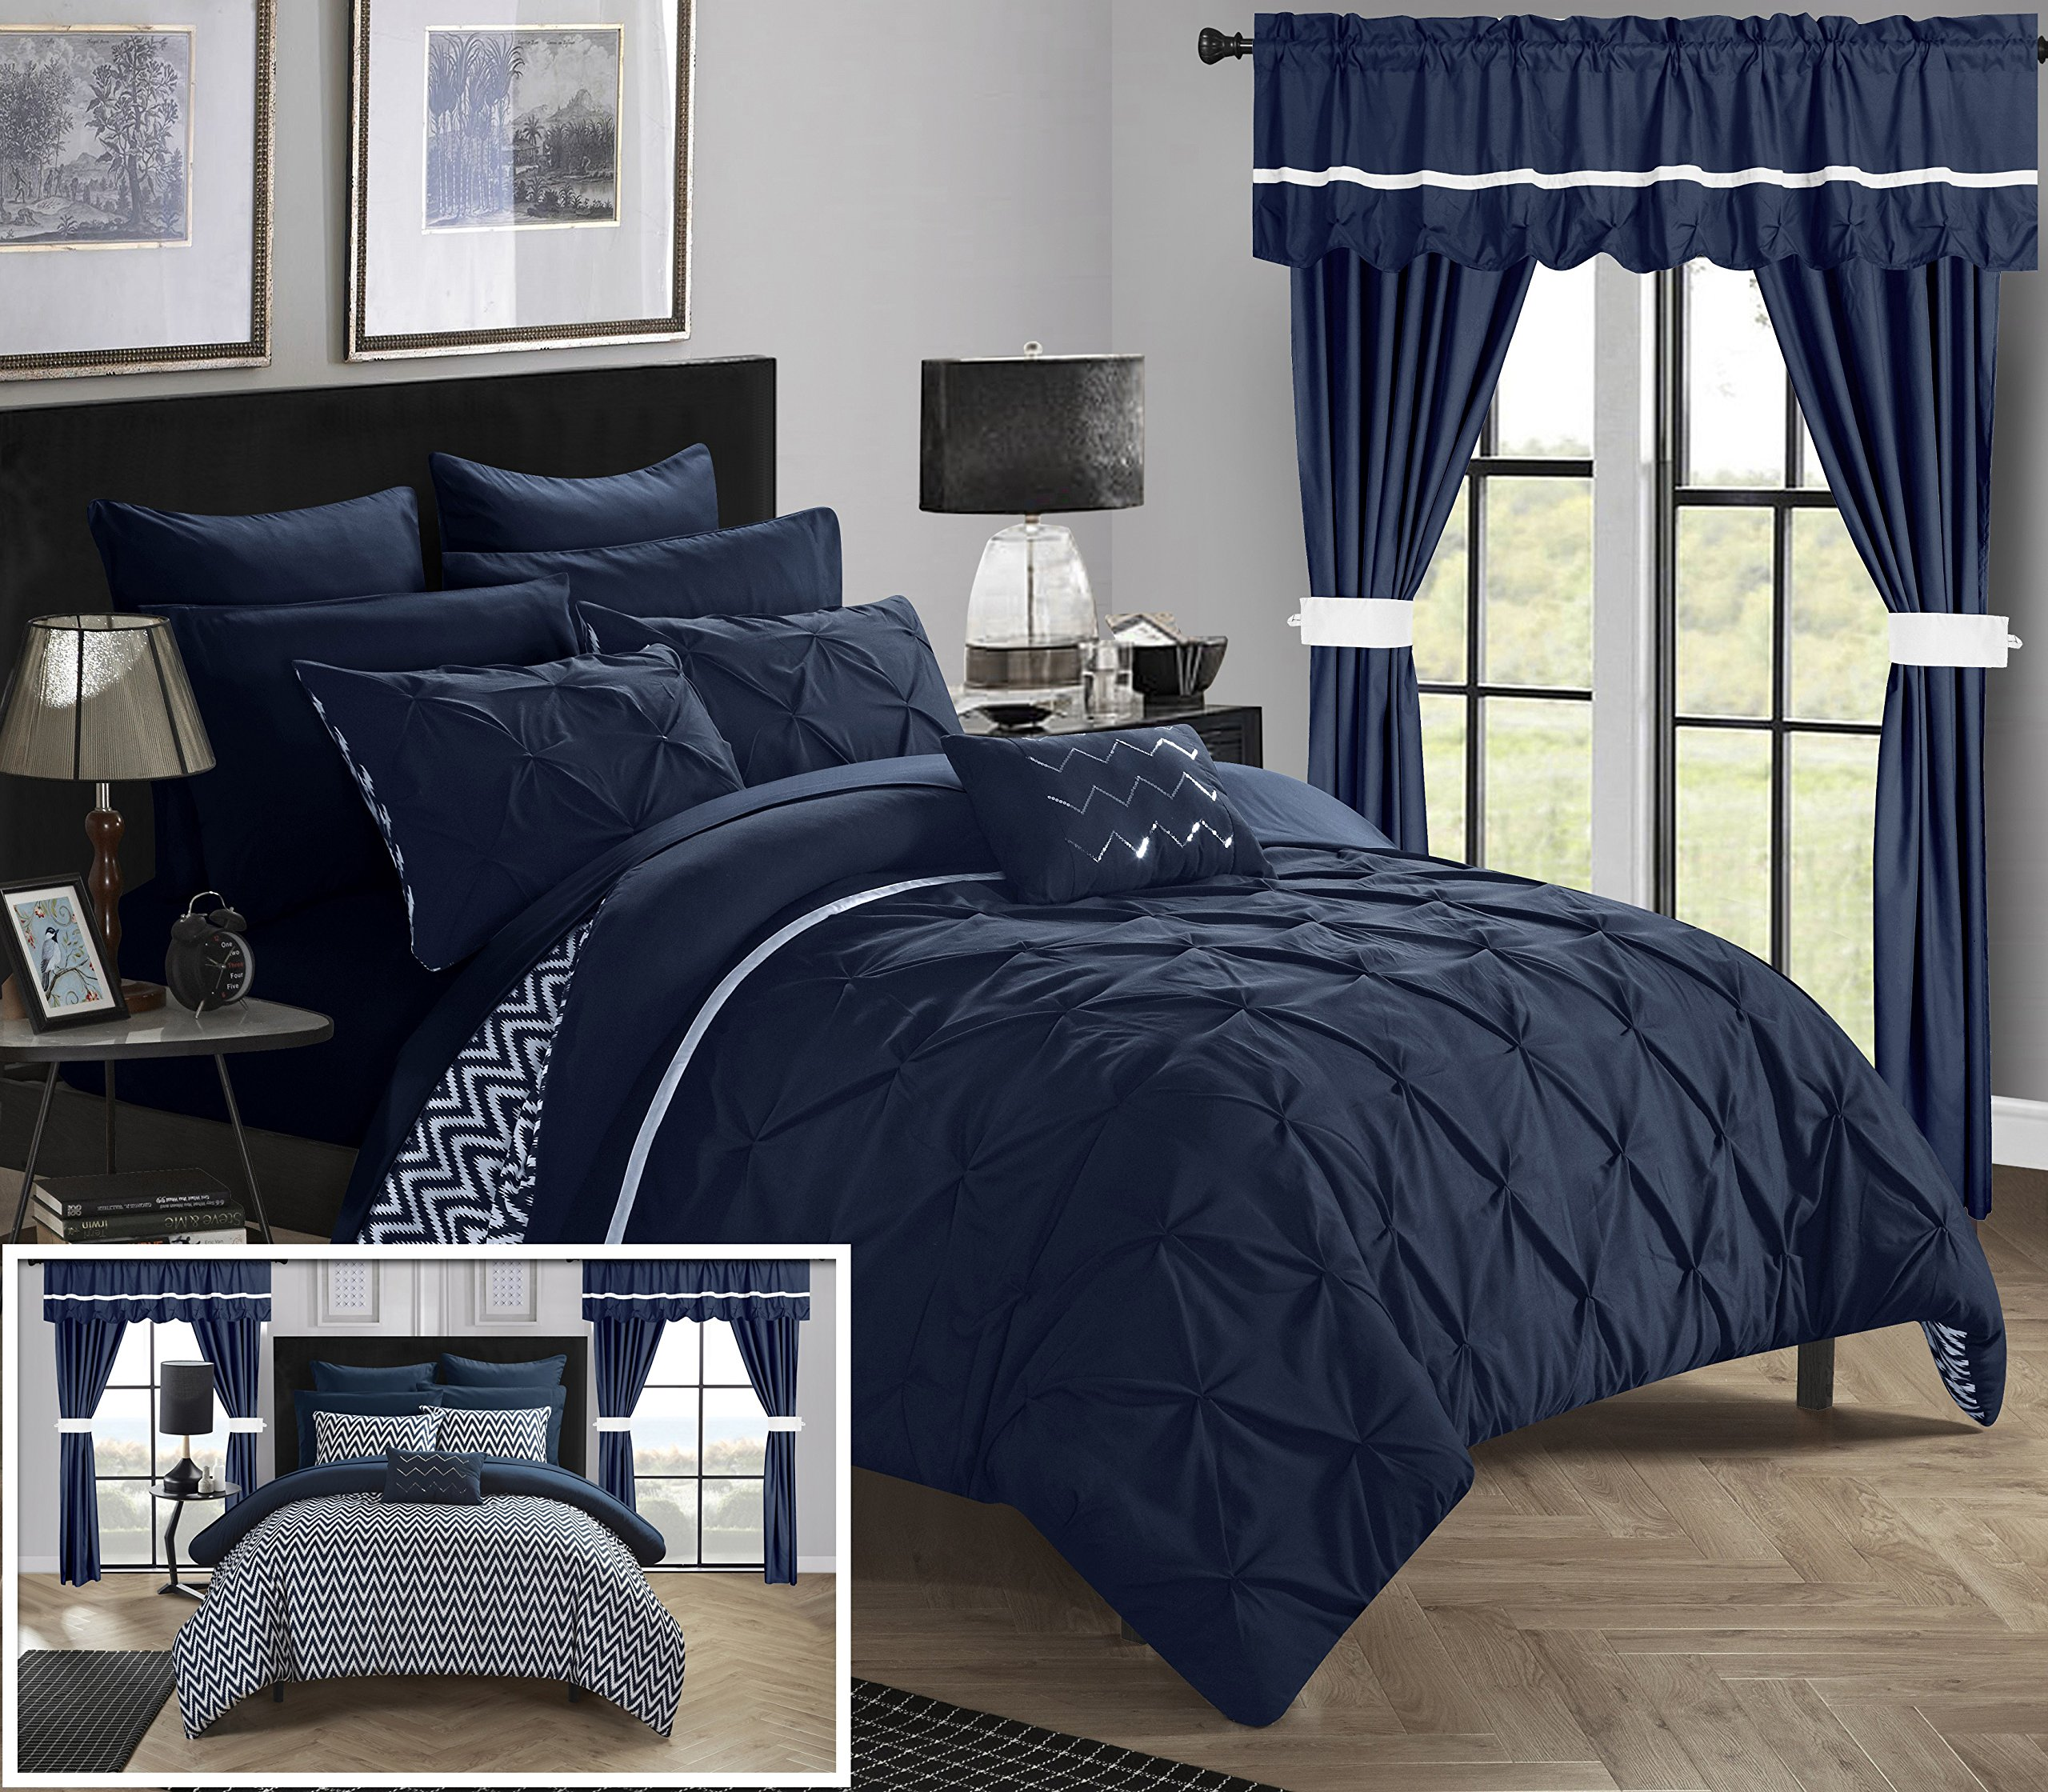 Chic Home CS0574-AN 20 Piece Jacksonville Complete Bed Room In A Bag Super Pinch Pleated Design Reversible Chevron Pattern Comforter Set, Sheets Window Treatments And Decorative Pillows, King, Navy